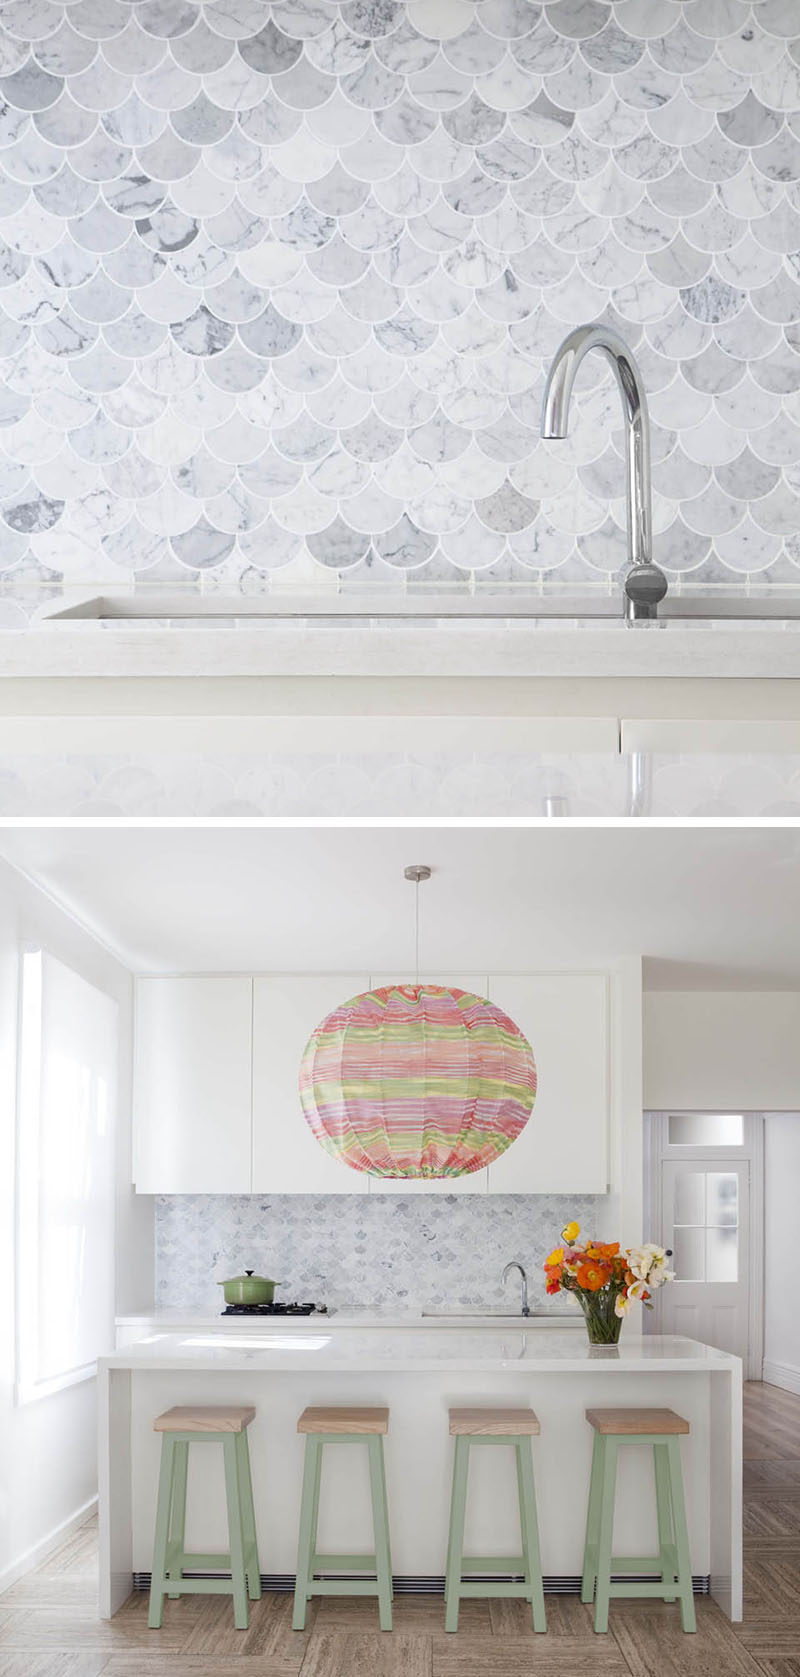 Fish tiles bathroom - Second They Re An Easy Way To Inject A Bit Of Fun Into Your Wall Tile